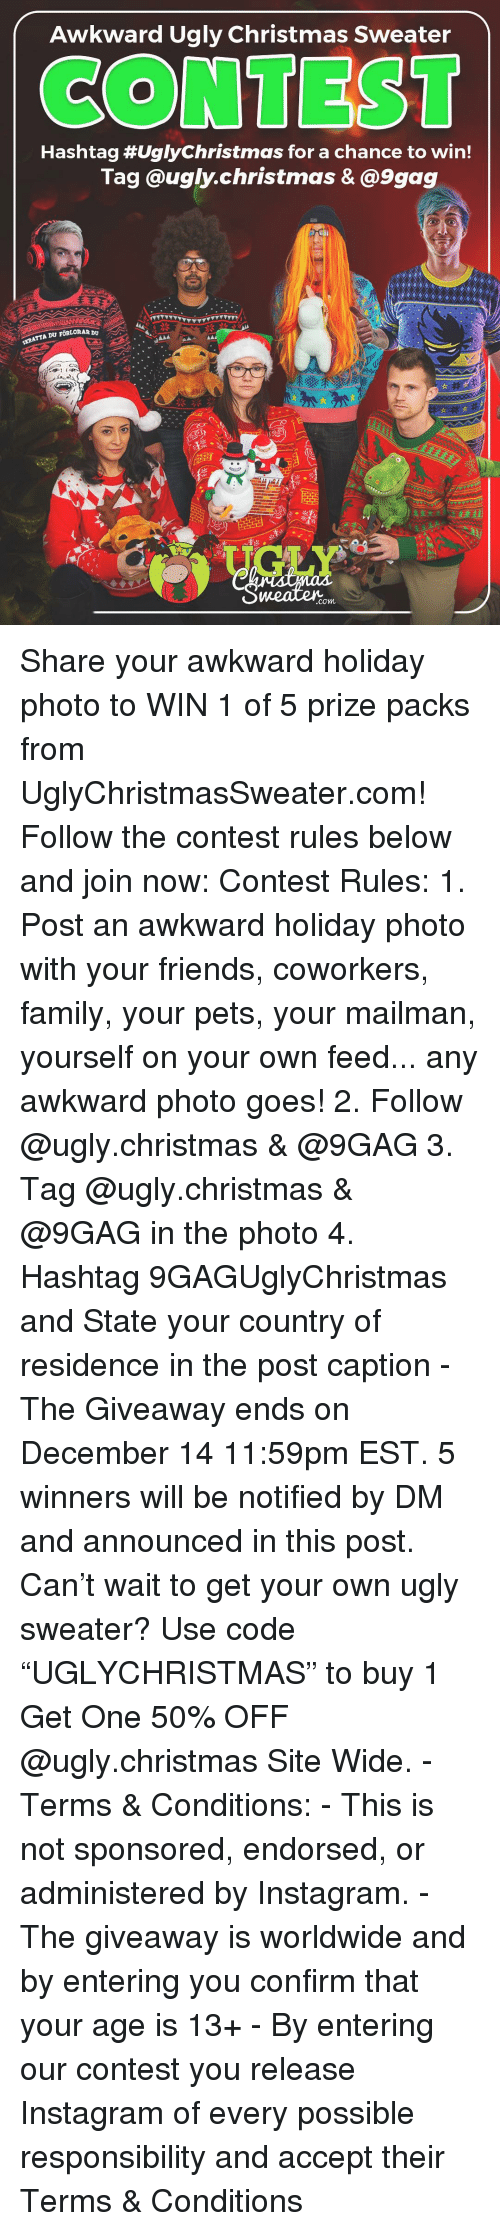 """9gag, Christmas, and Family: Awkward Ugly Christmas Sweater  CONTEST  Hashtag #UglyChristmas for a chance to win!  Tag @ugly.christmas &@9gag  KRATTA DU FORLORAR  .com Share your awkward holiday photo to WIN 1 of 5 prize packs from UglyChristmasSweater.com! Follow the contest rules below and join now: Contest Rules: 1. Post an awkward holiday photo with your friends, coworkers, family, your pets, your mailman, yourself on your own feed... any awkward photo goes! 2. Follow @ugly.christmas & @9GAG 3. Tag @ugly.christmas & @9GAG in the photo 4. Hashtag 9GAGUglyChristmas and State your country of residence in the post caption - The Giveaway ends on December 14 11:59pm EST. 5 winners will be notified by DM and announced in this post. Can't wait to get your own ugly sweater? Use code """"UGLYCHRISTMAS"""" to buy 1 Get One 50% OFF @ugly.christmas Site Wide. - Terms & Conditions: - This is not sponsored, endorsed, or administered by Instagram. - The giveaway is worldwide and by entering you confirm that your age is 13+ - By entering our contest you release Instagram of every possible responsibility and accept their Terms & Conditions"""